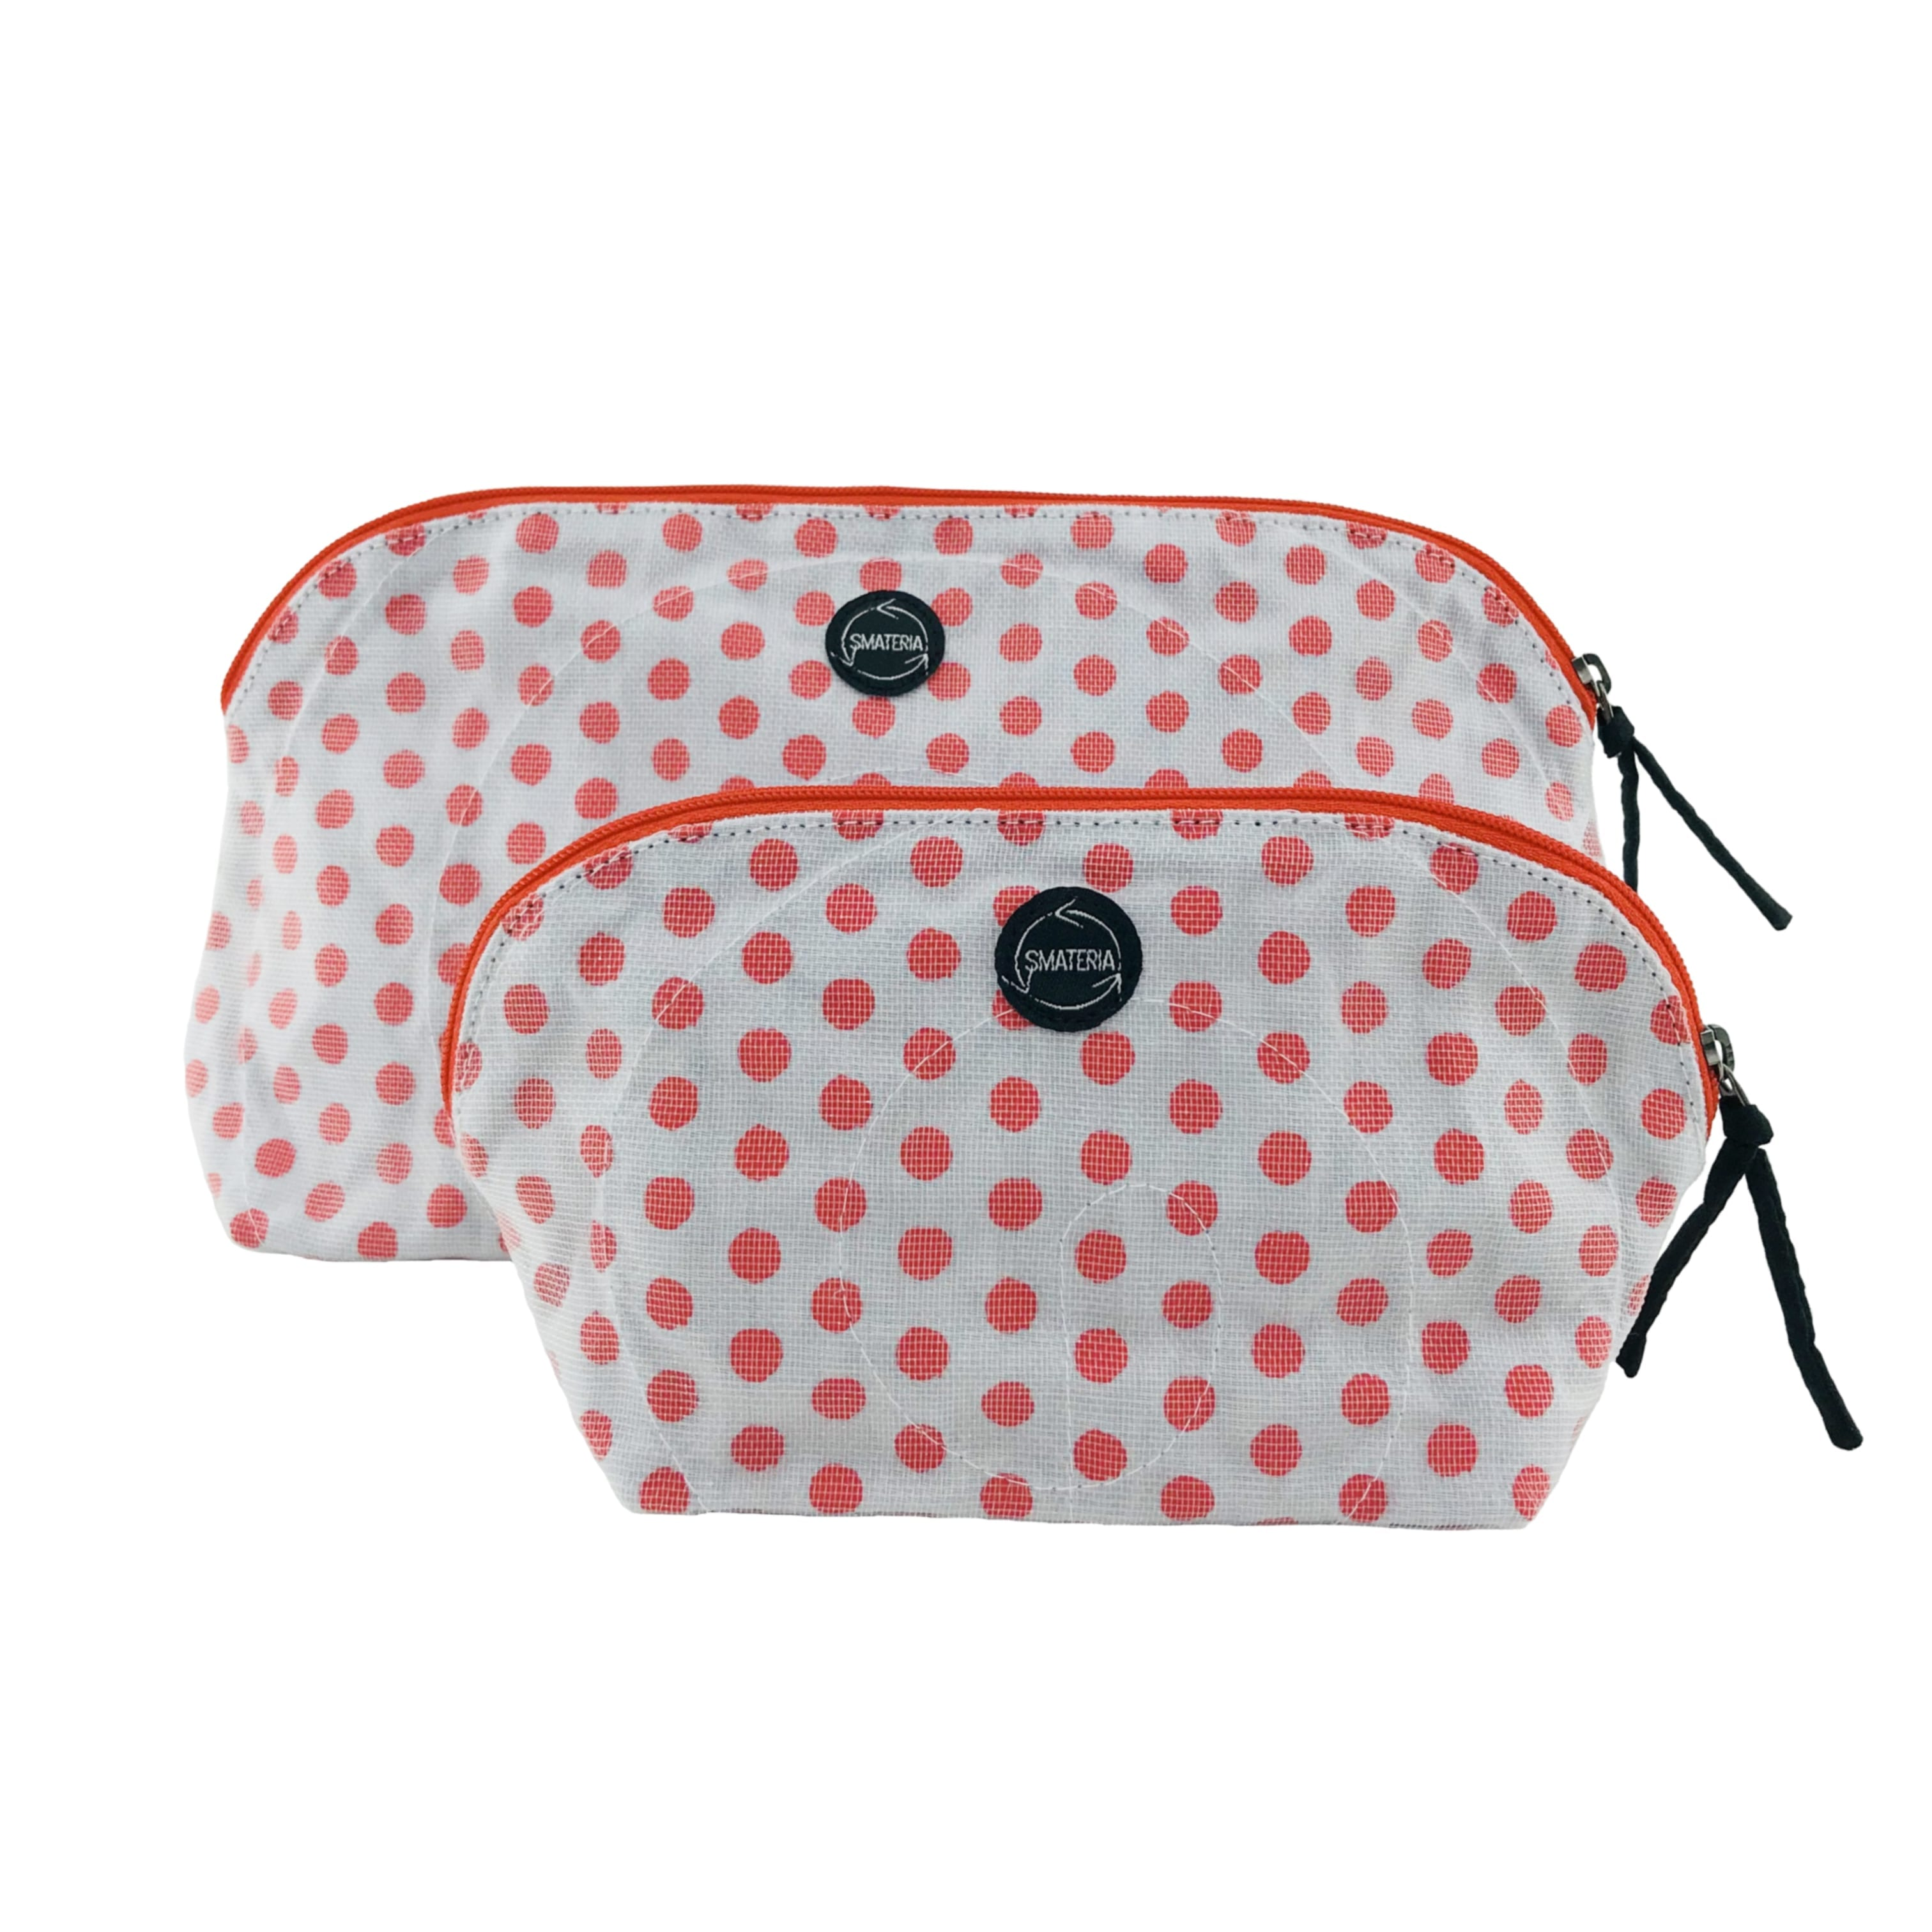 Markup - Makeup pouch - Large - Small - Red dots